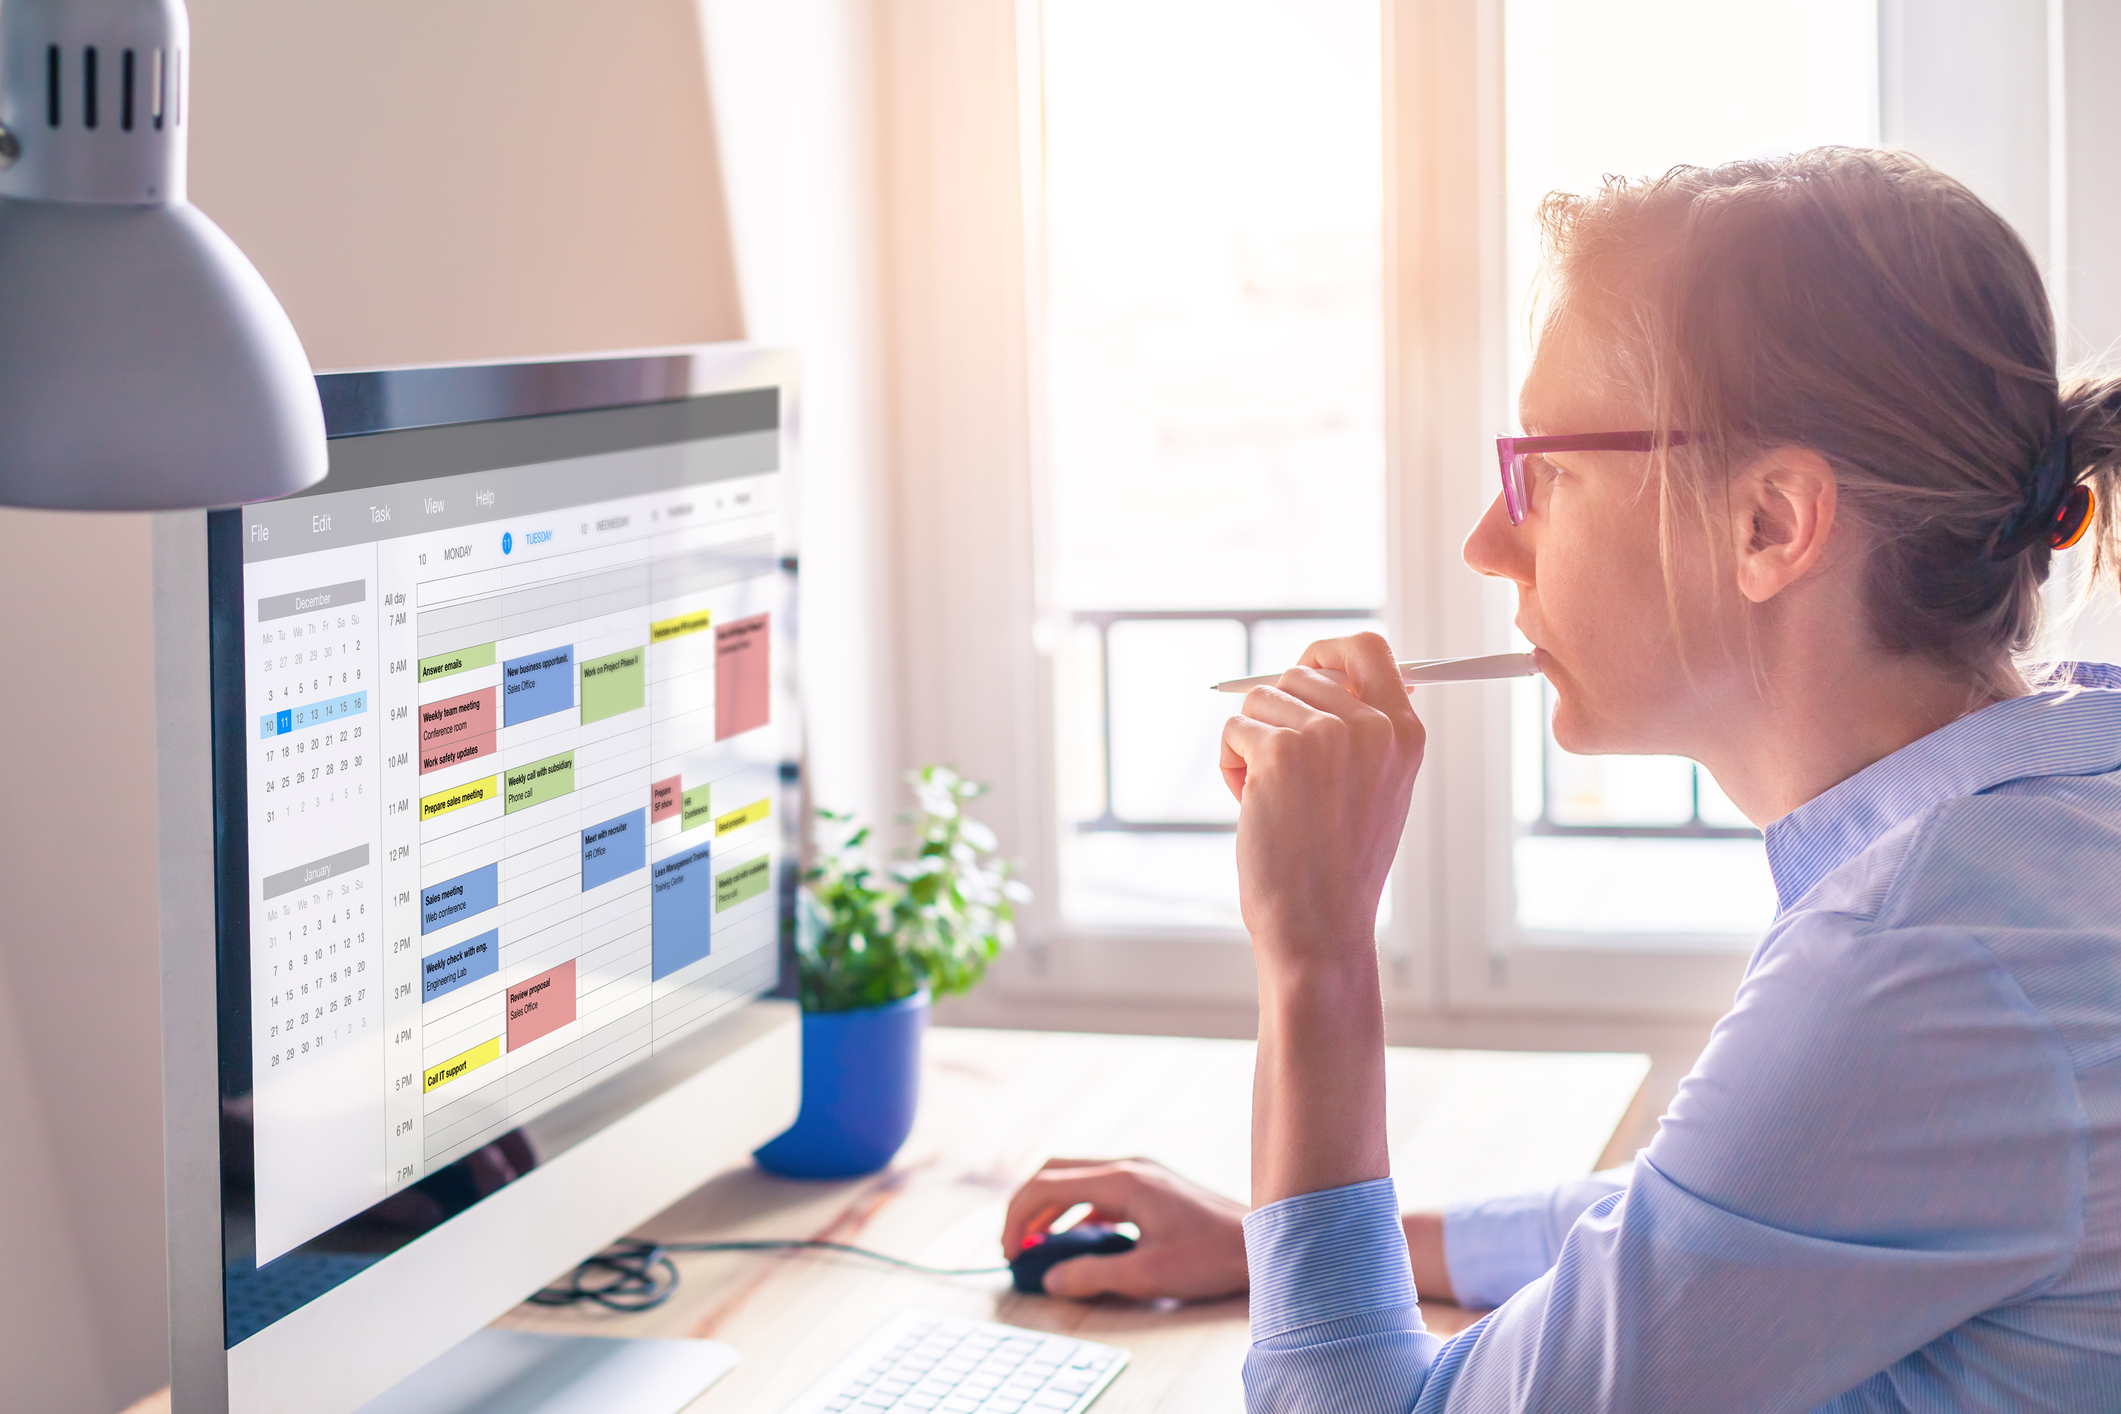 woman-looking-at-calendar-on-computer